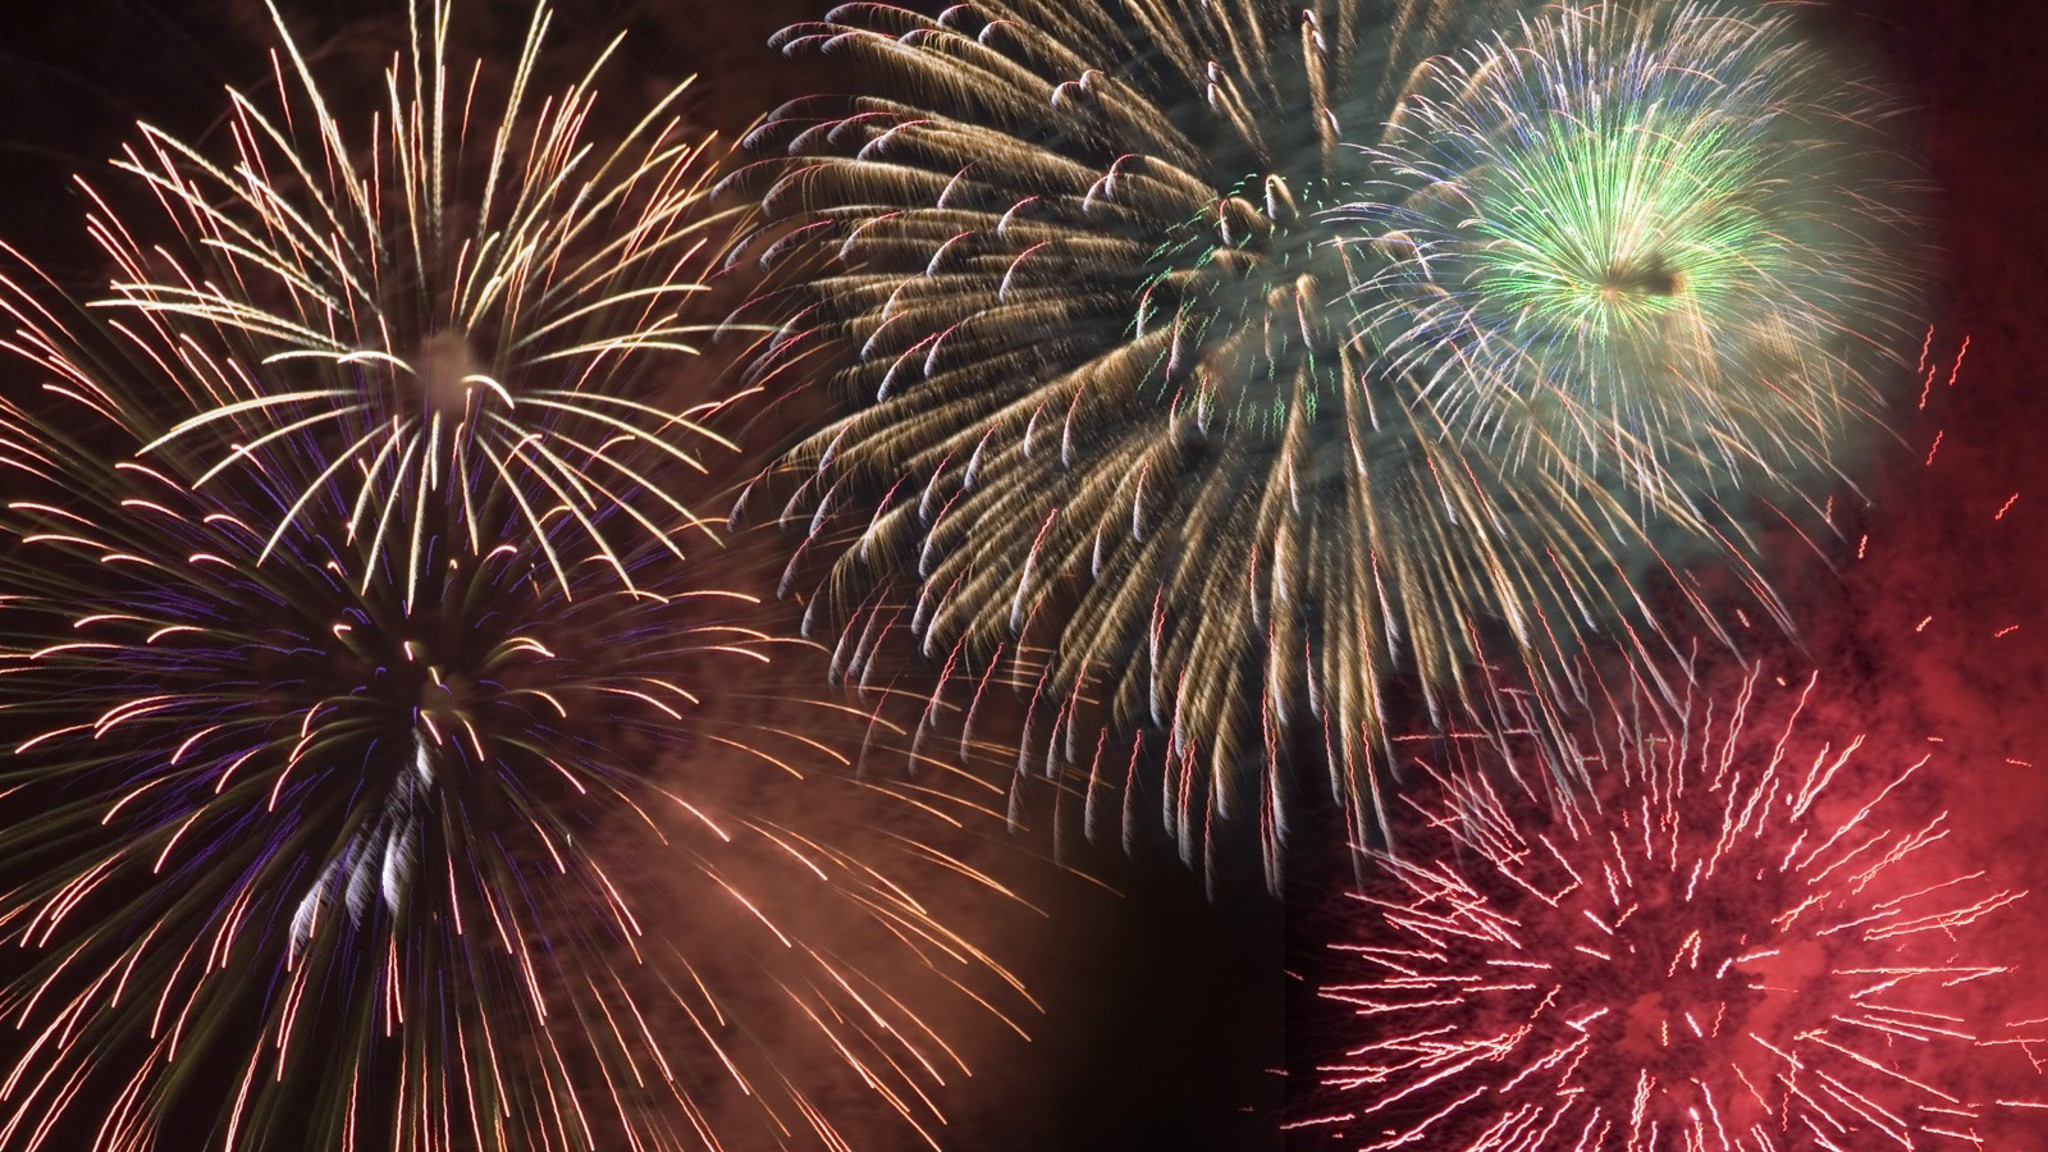 fireworks wallpaper 2048 x 1152 - photo #20